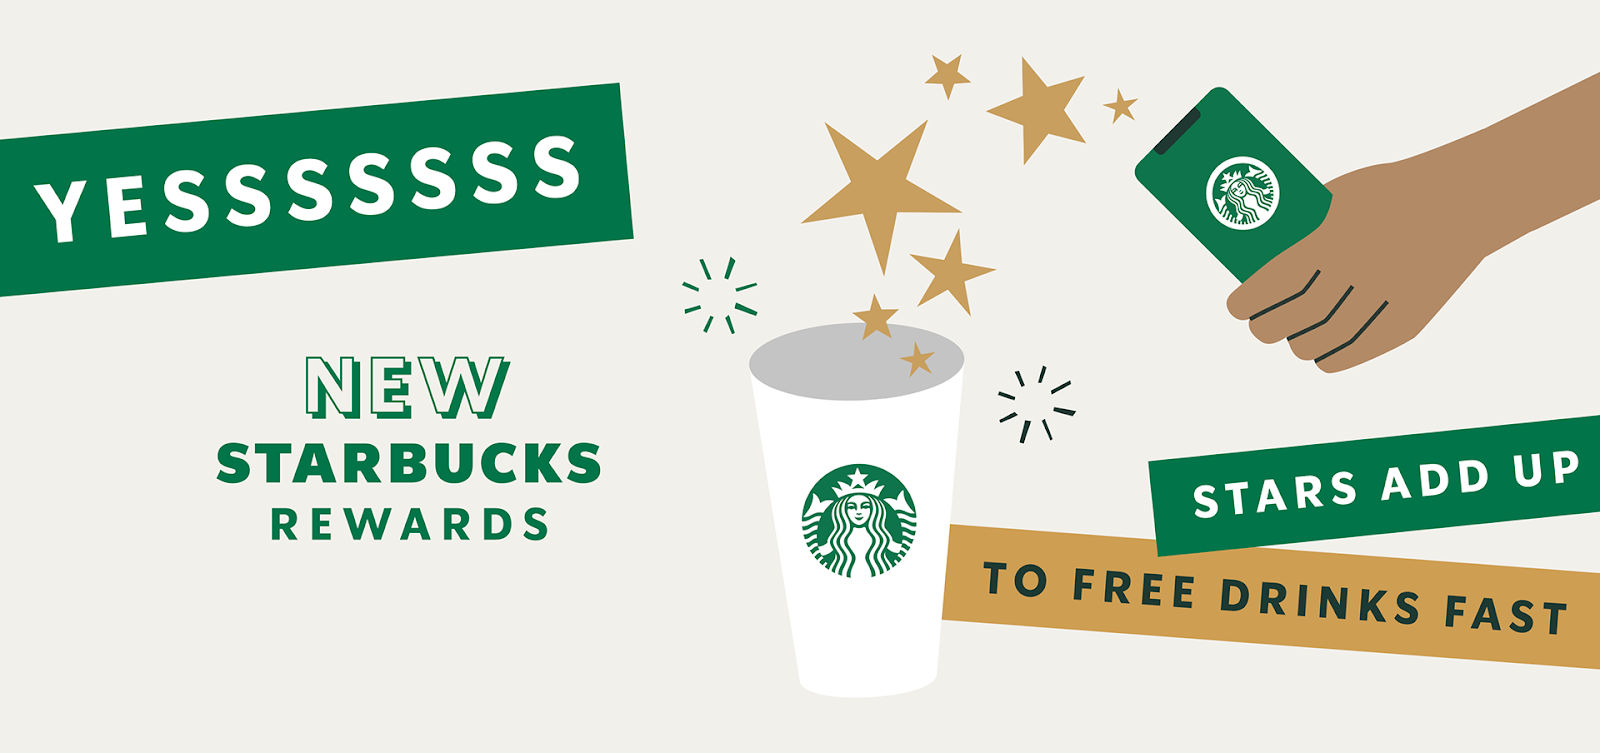 Starbucks rewards point system loyalty program